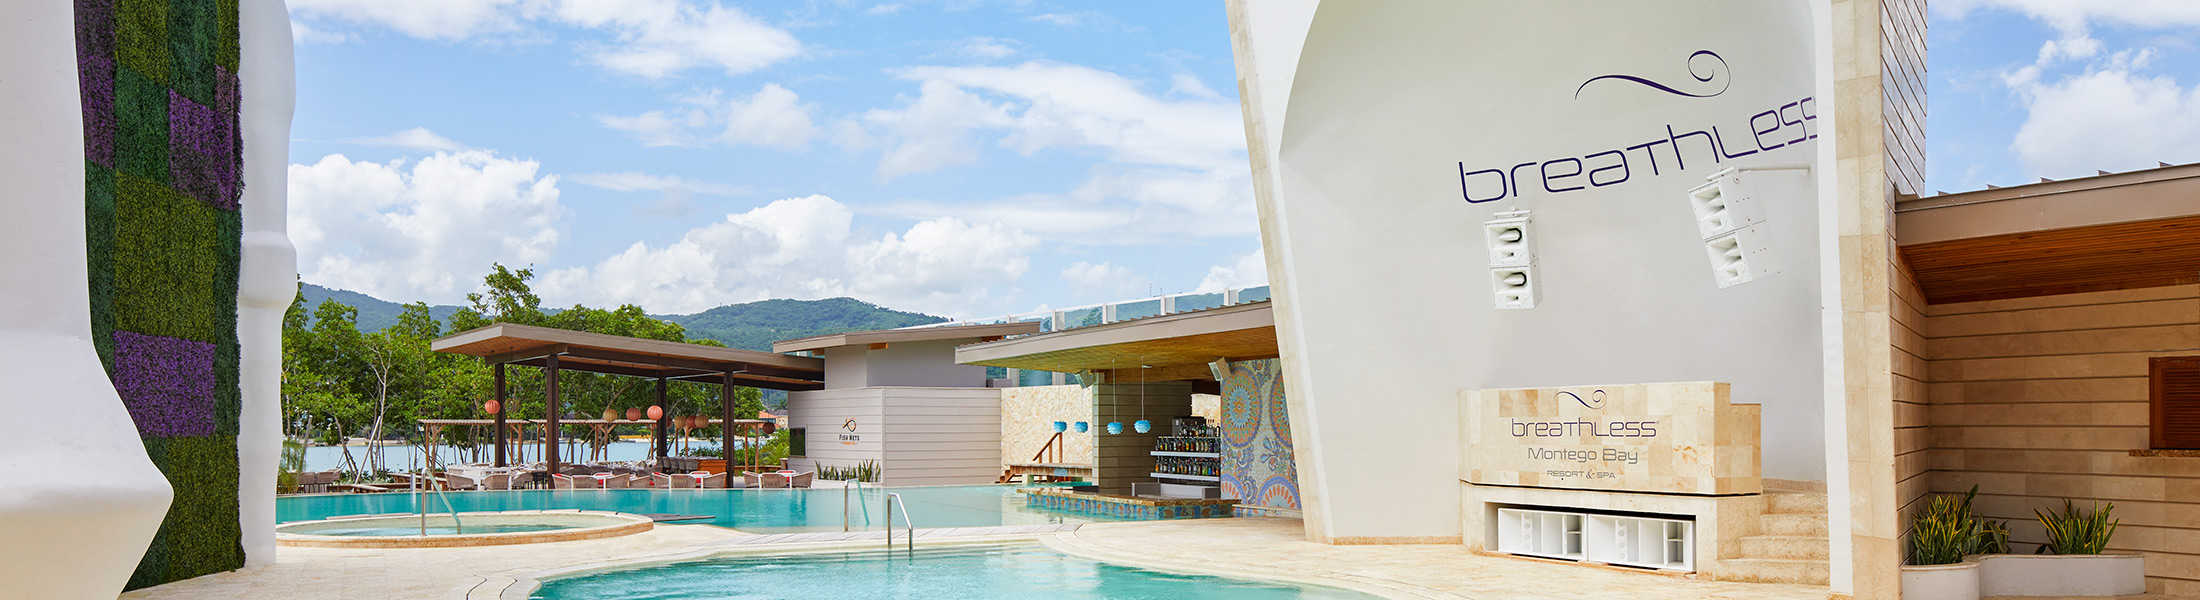 Freestyle pool and swim up bar at Breathless Montego Bay